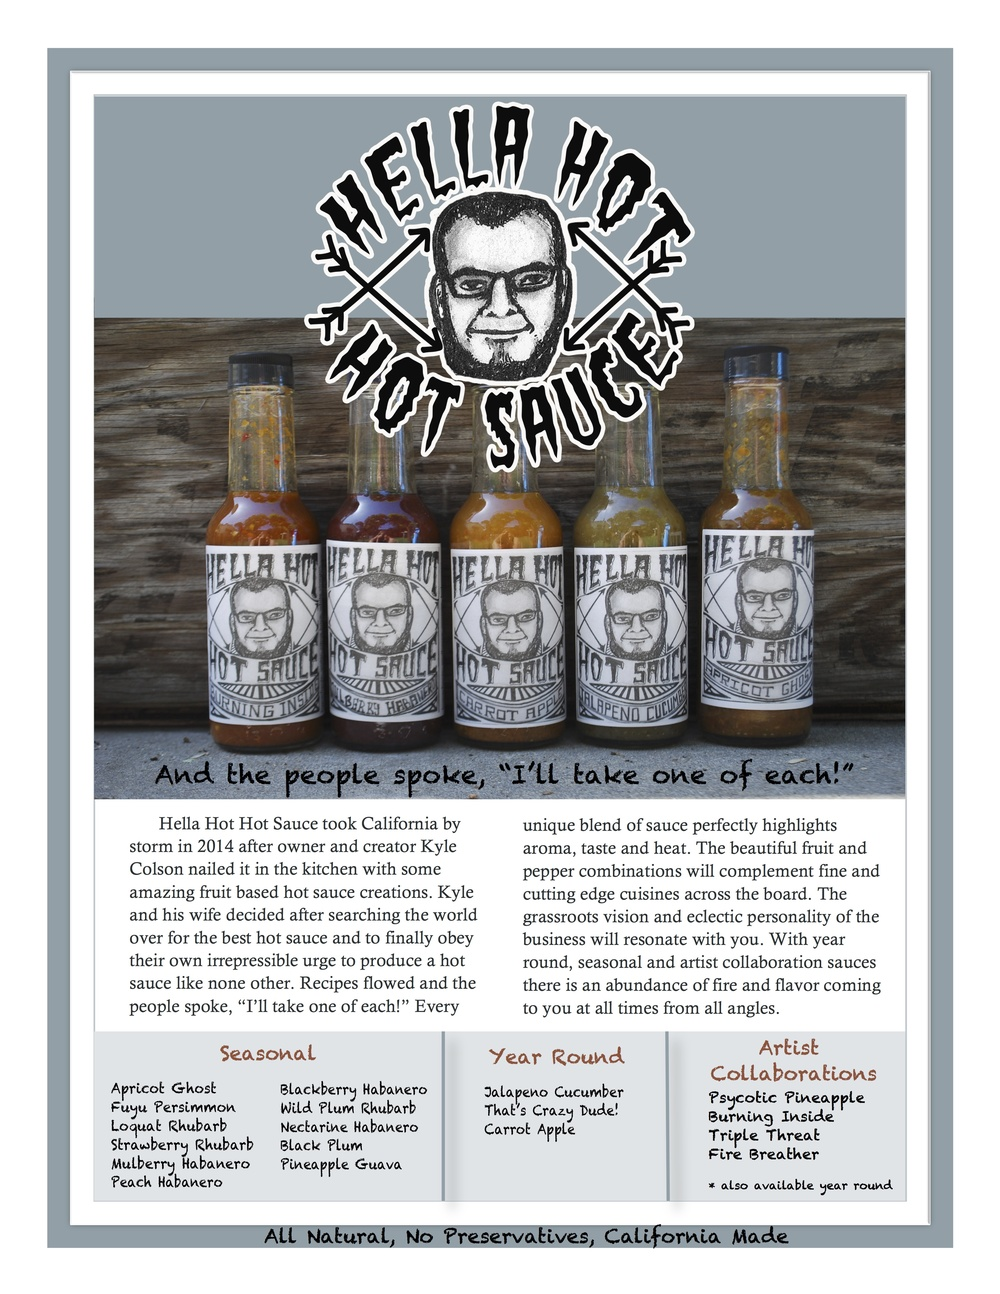 Hella Hot Hot Sauce Marketing Brochure